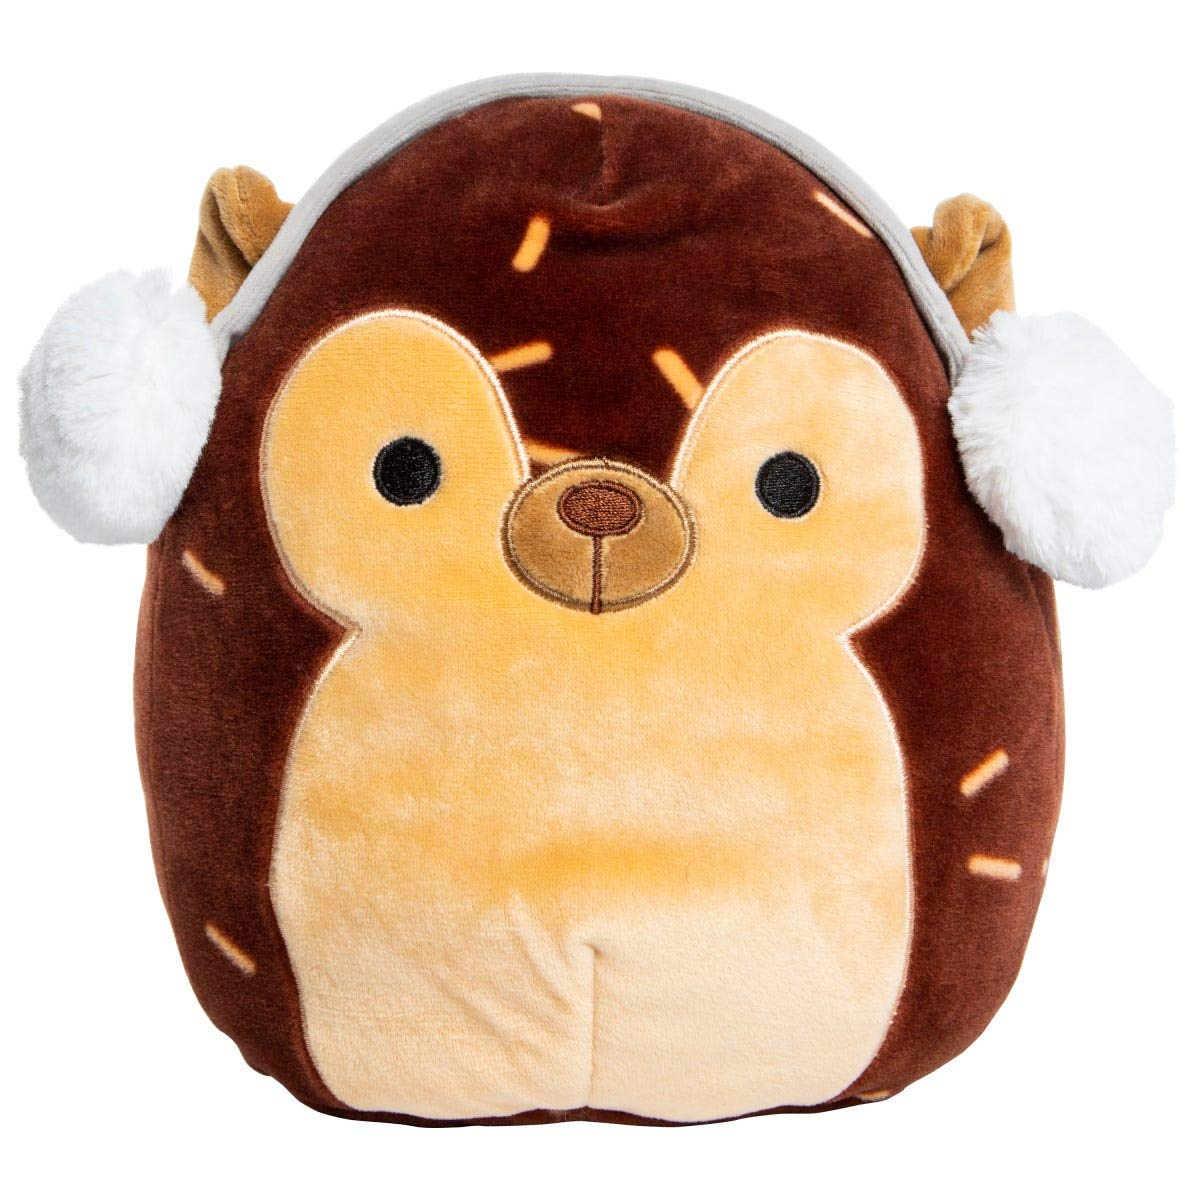 Squishmallow Kellytoy Christmas Squad 8 Inch Dawn The Fawn with Earmuffs Super Soft Plush Toy Animal Pillow Pal Buddy Holiday Stocking Stuffer